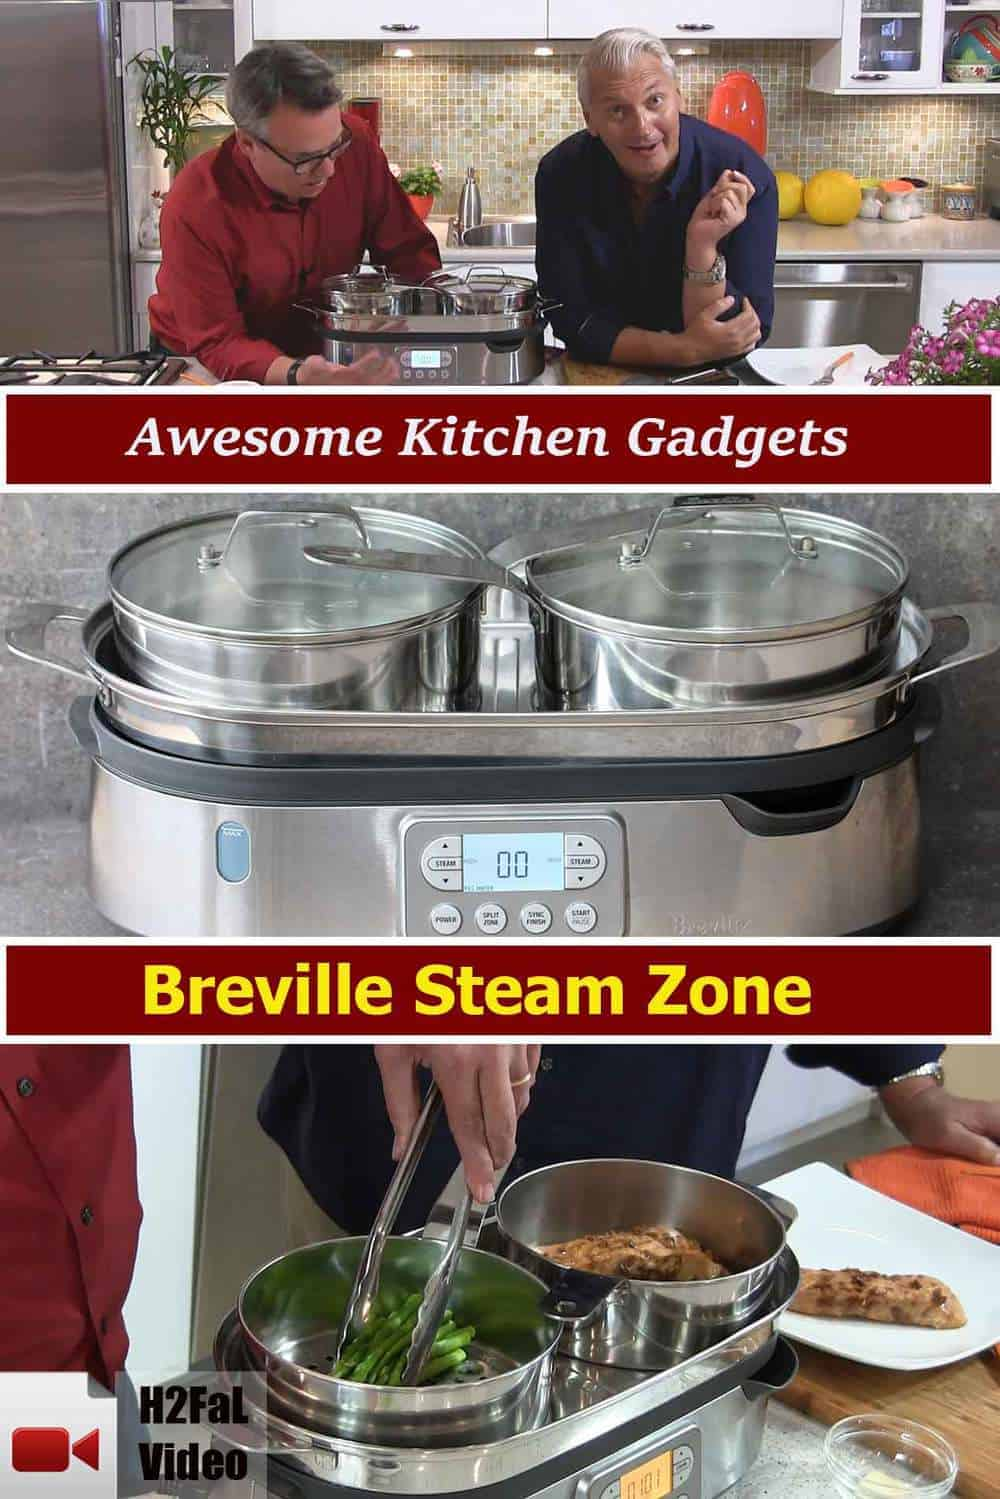 Awesome kitchen gadgets breville steam zone how to Awesome kitchen gadgets